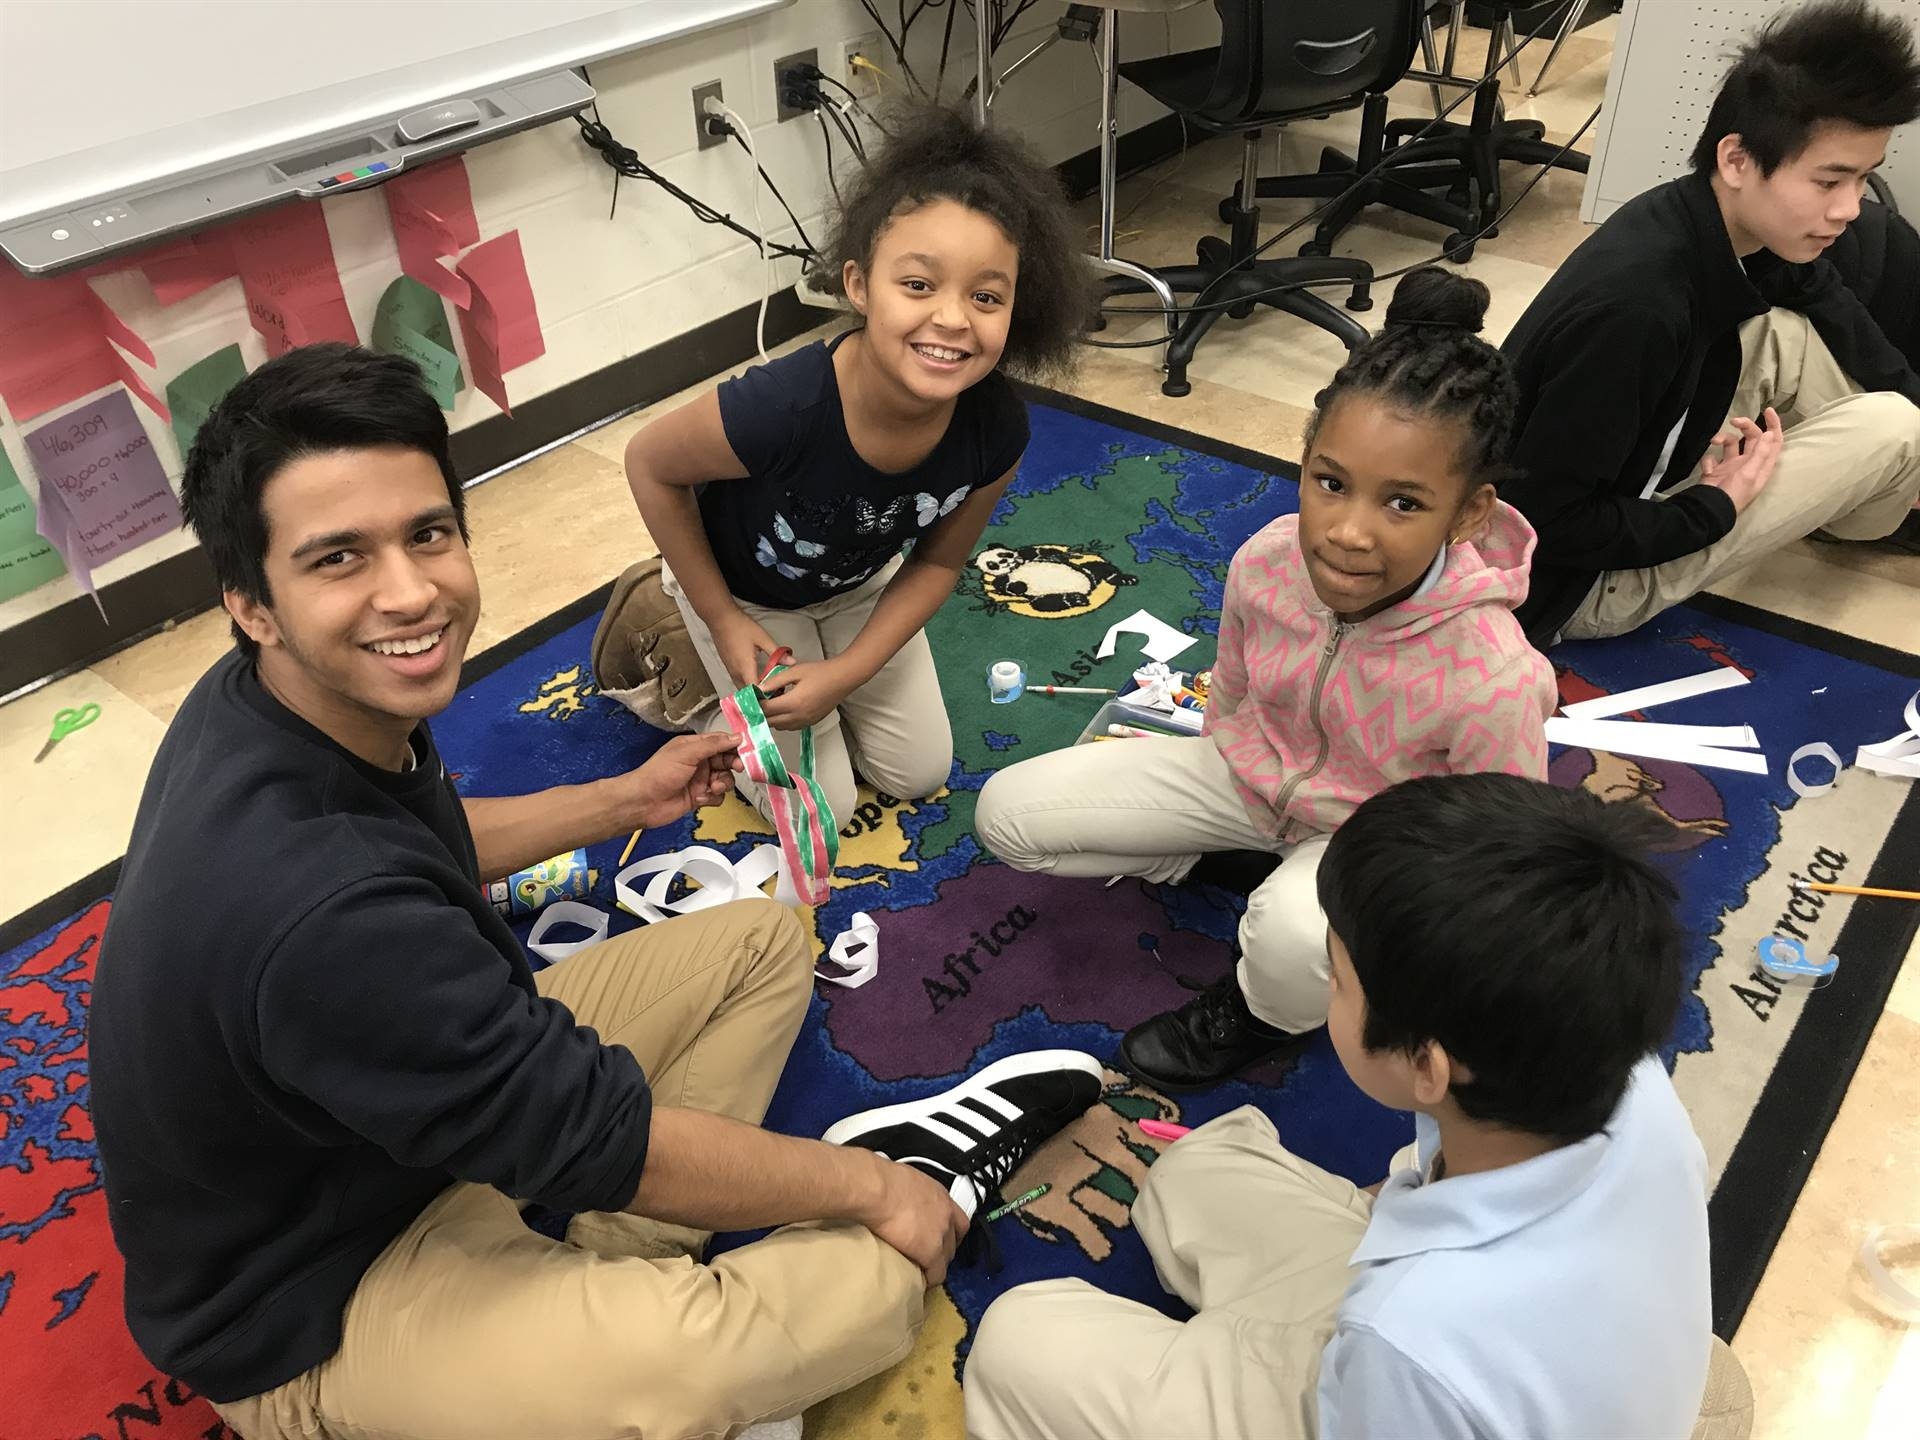 Lawrenceville Students help out at MLK Service Day